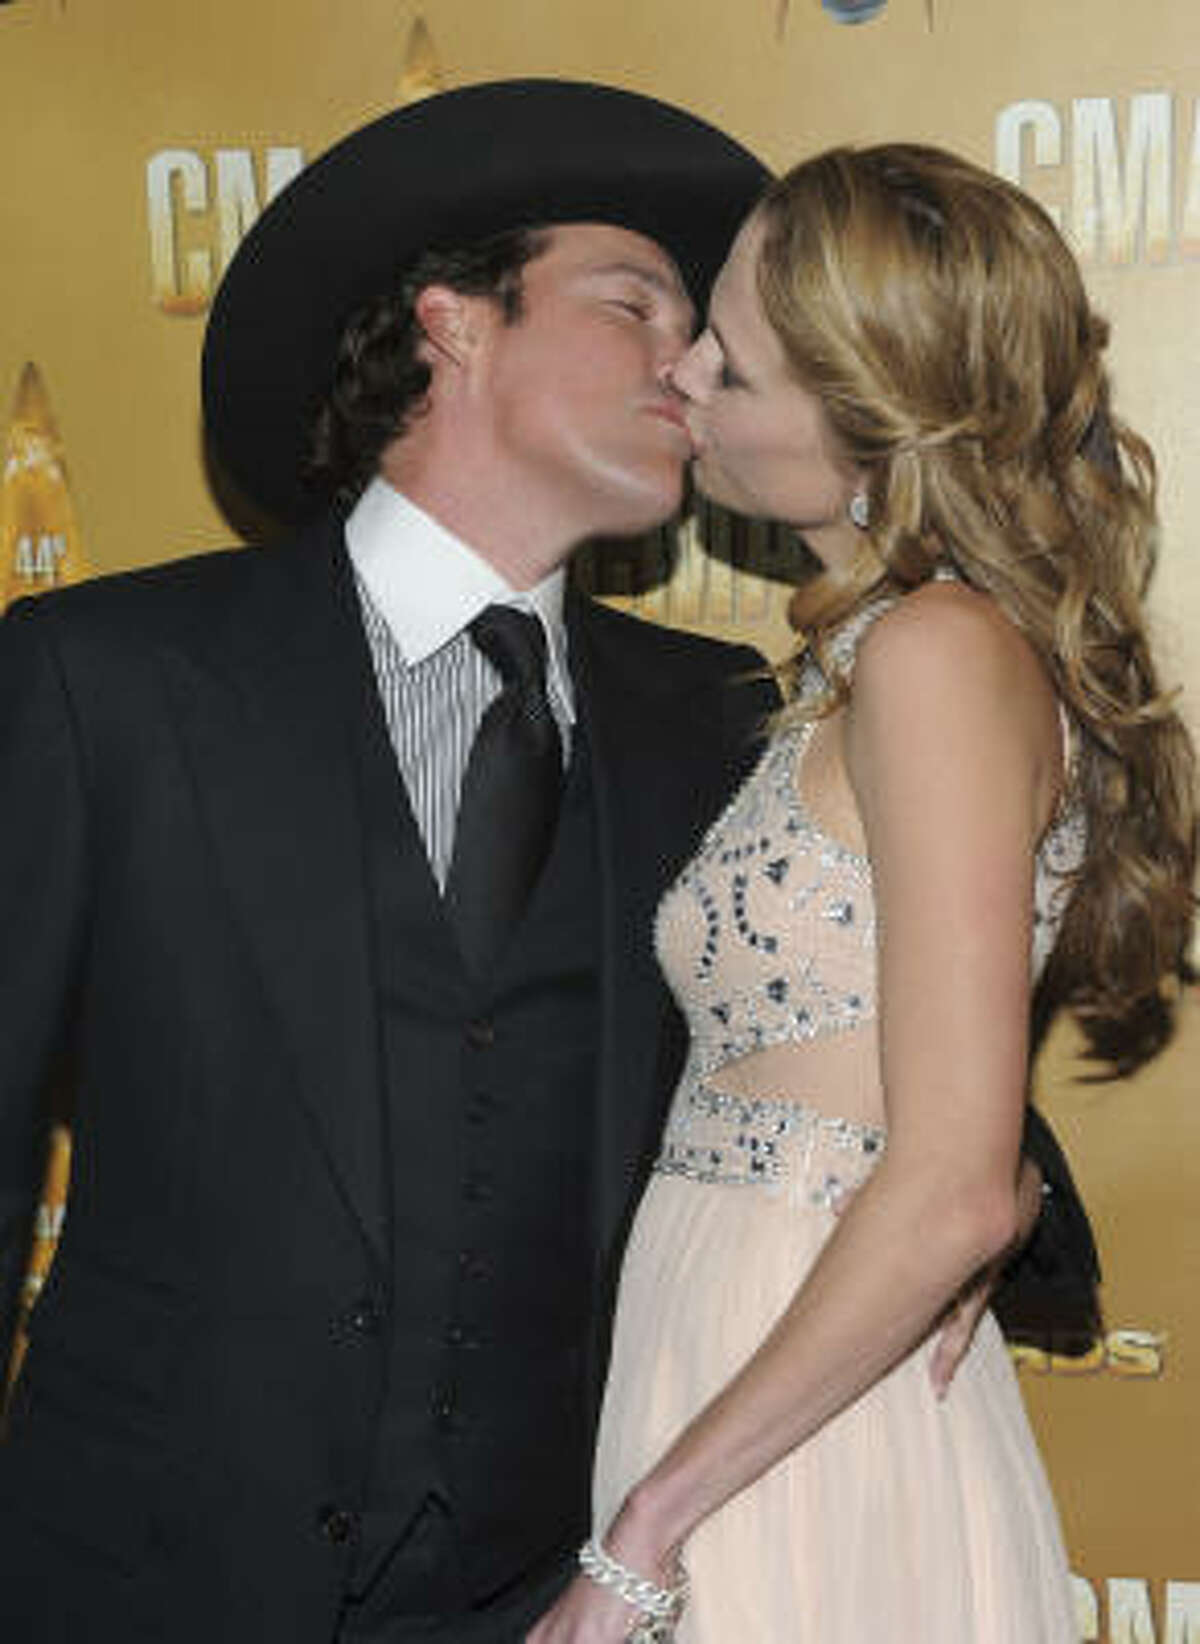 Singer Clay Walker and his wife, Jessica